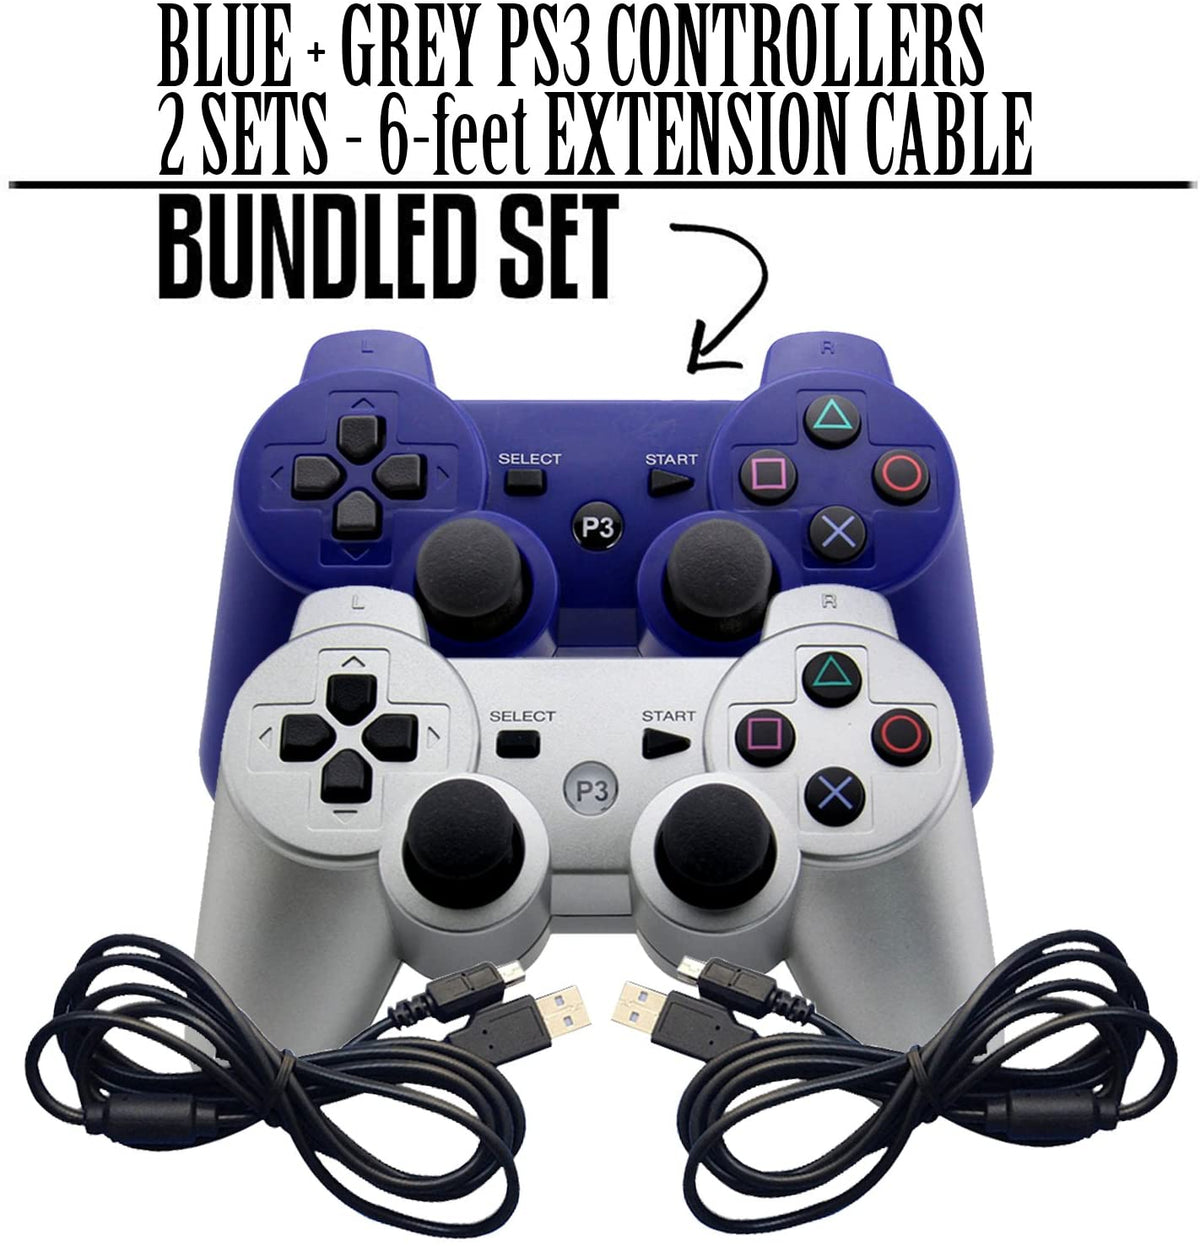 PS3 3 WIRELESS GAMING CONTROLLER & EXTENSION CORD BUNDLE (WHITE AND BLUE) - EvoRetro Lets Game